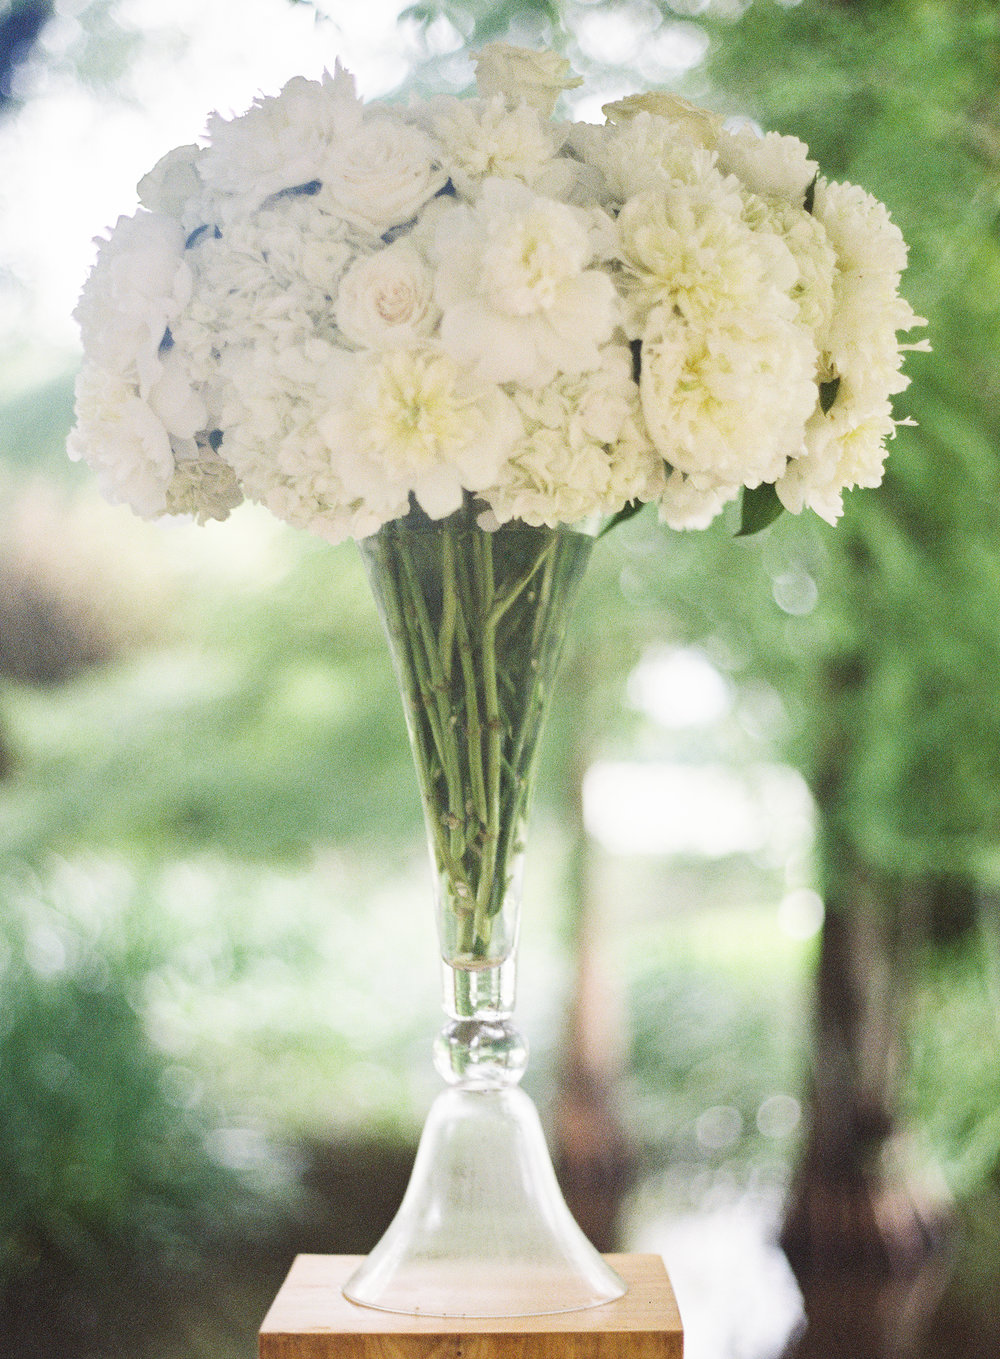 Sapphire Events | Catherine Guidry Photography | Wedding Planning | New Orleans Wedding | Stella Plantation Wedding | Blue and White Wedding | Classic Rainy Day Wedding | Outdoor Wedding | Tent Wedding | Hunter Boots | Blue and White Wedding Details | tall white altar arrangement